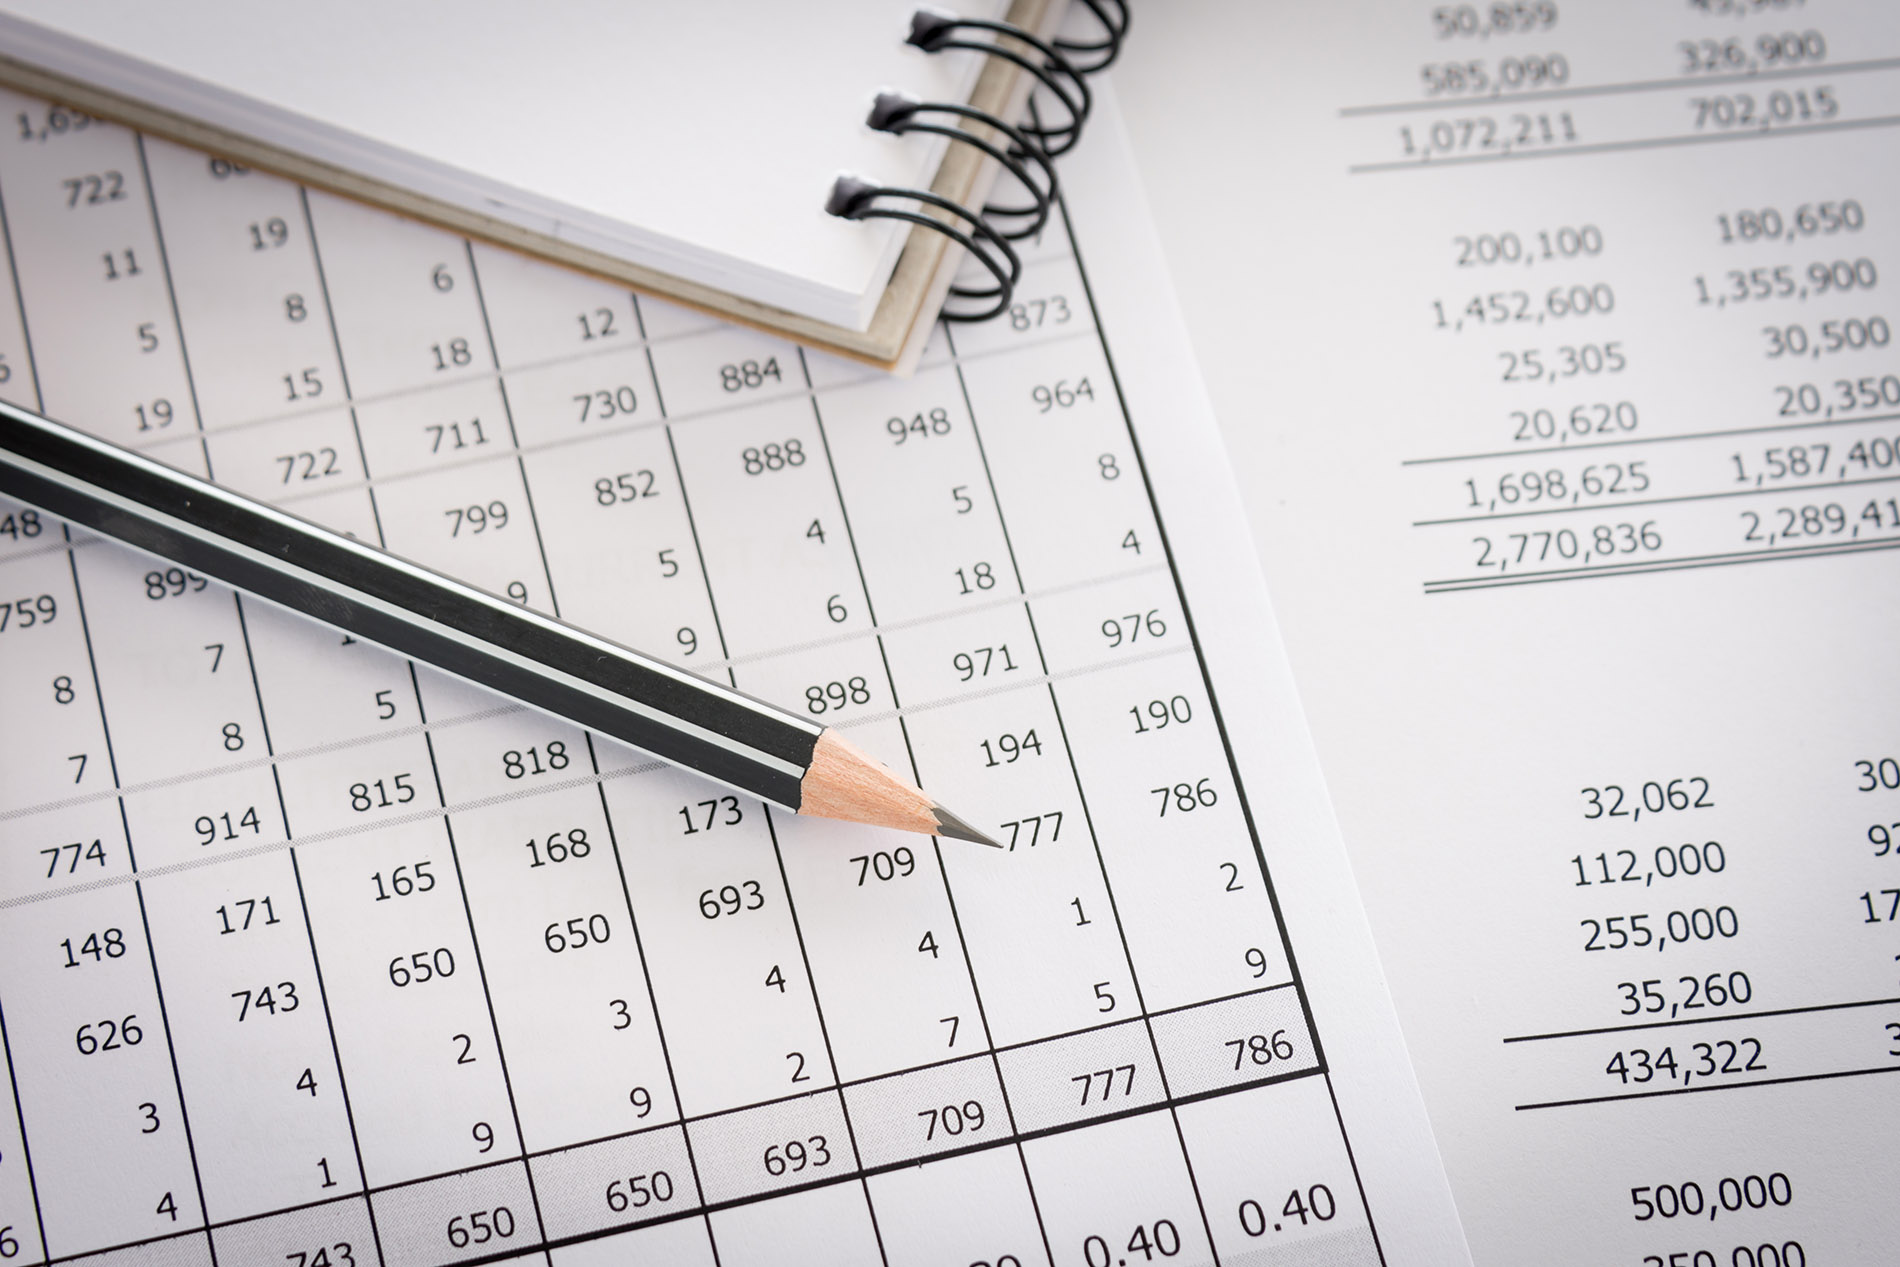 Still Doing the Books by Hand? Accounting Software Can Help Your Company Grow